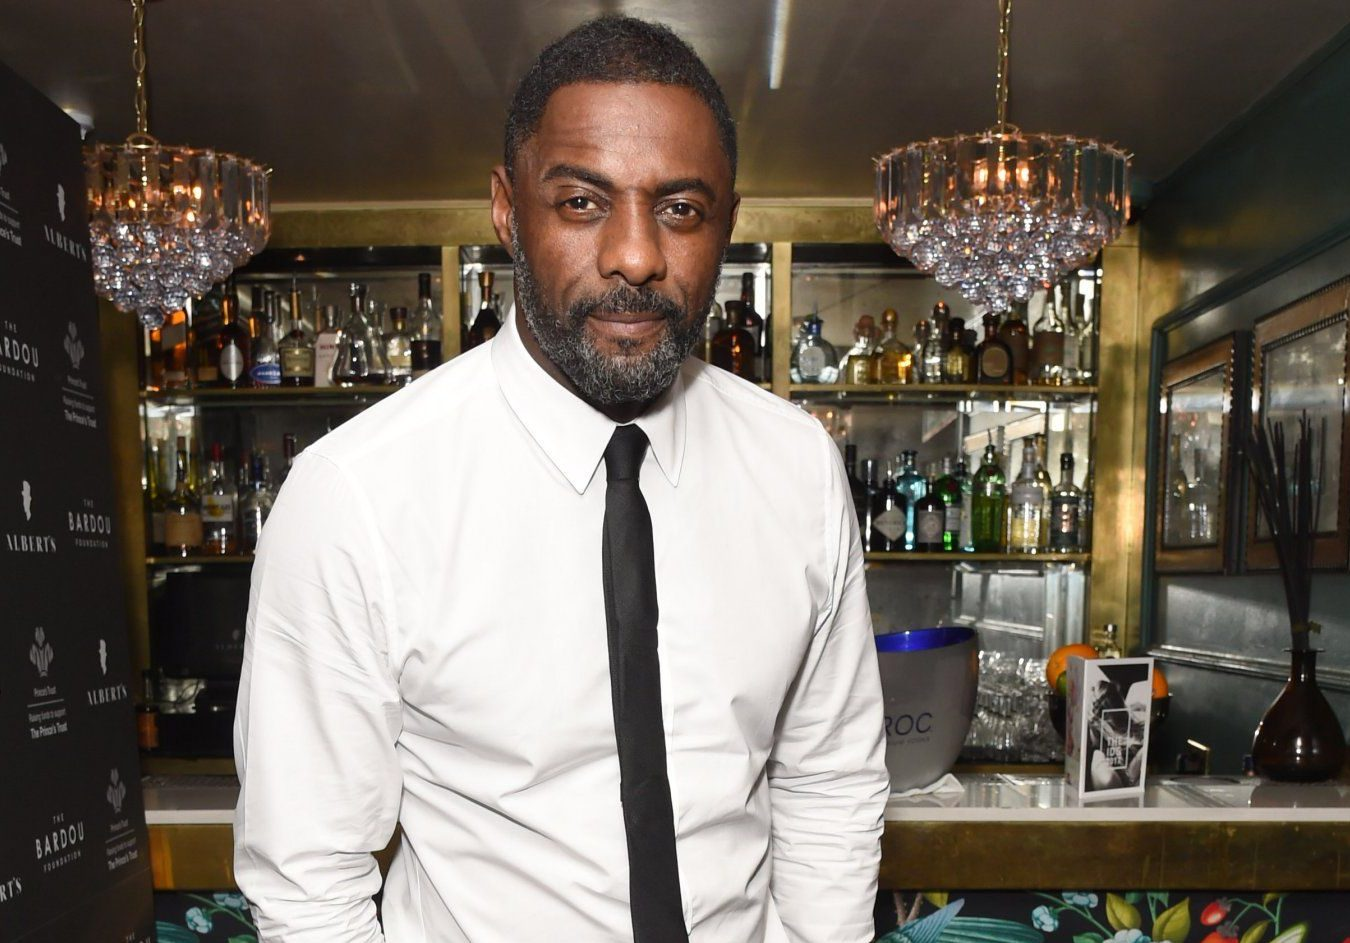 Idris Elba gushes over 15-year-old daughter as he rallies for men to speak up for women